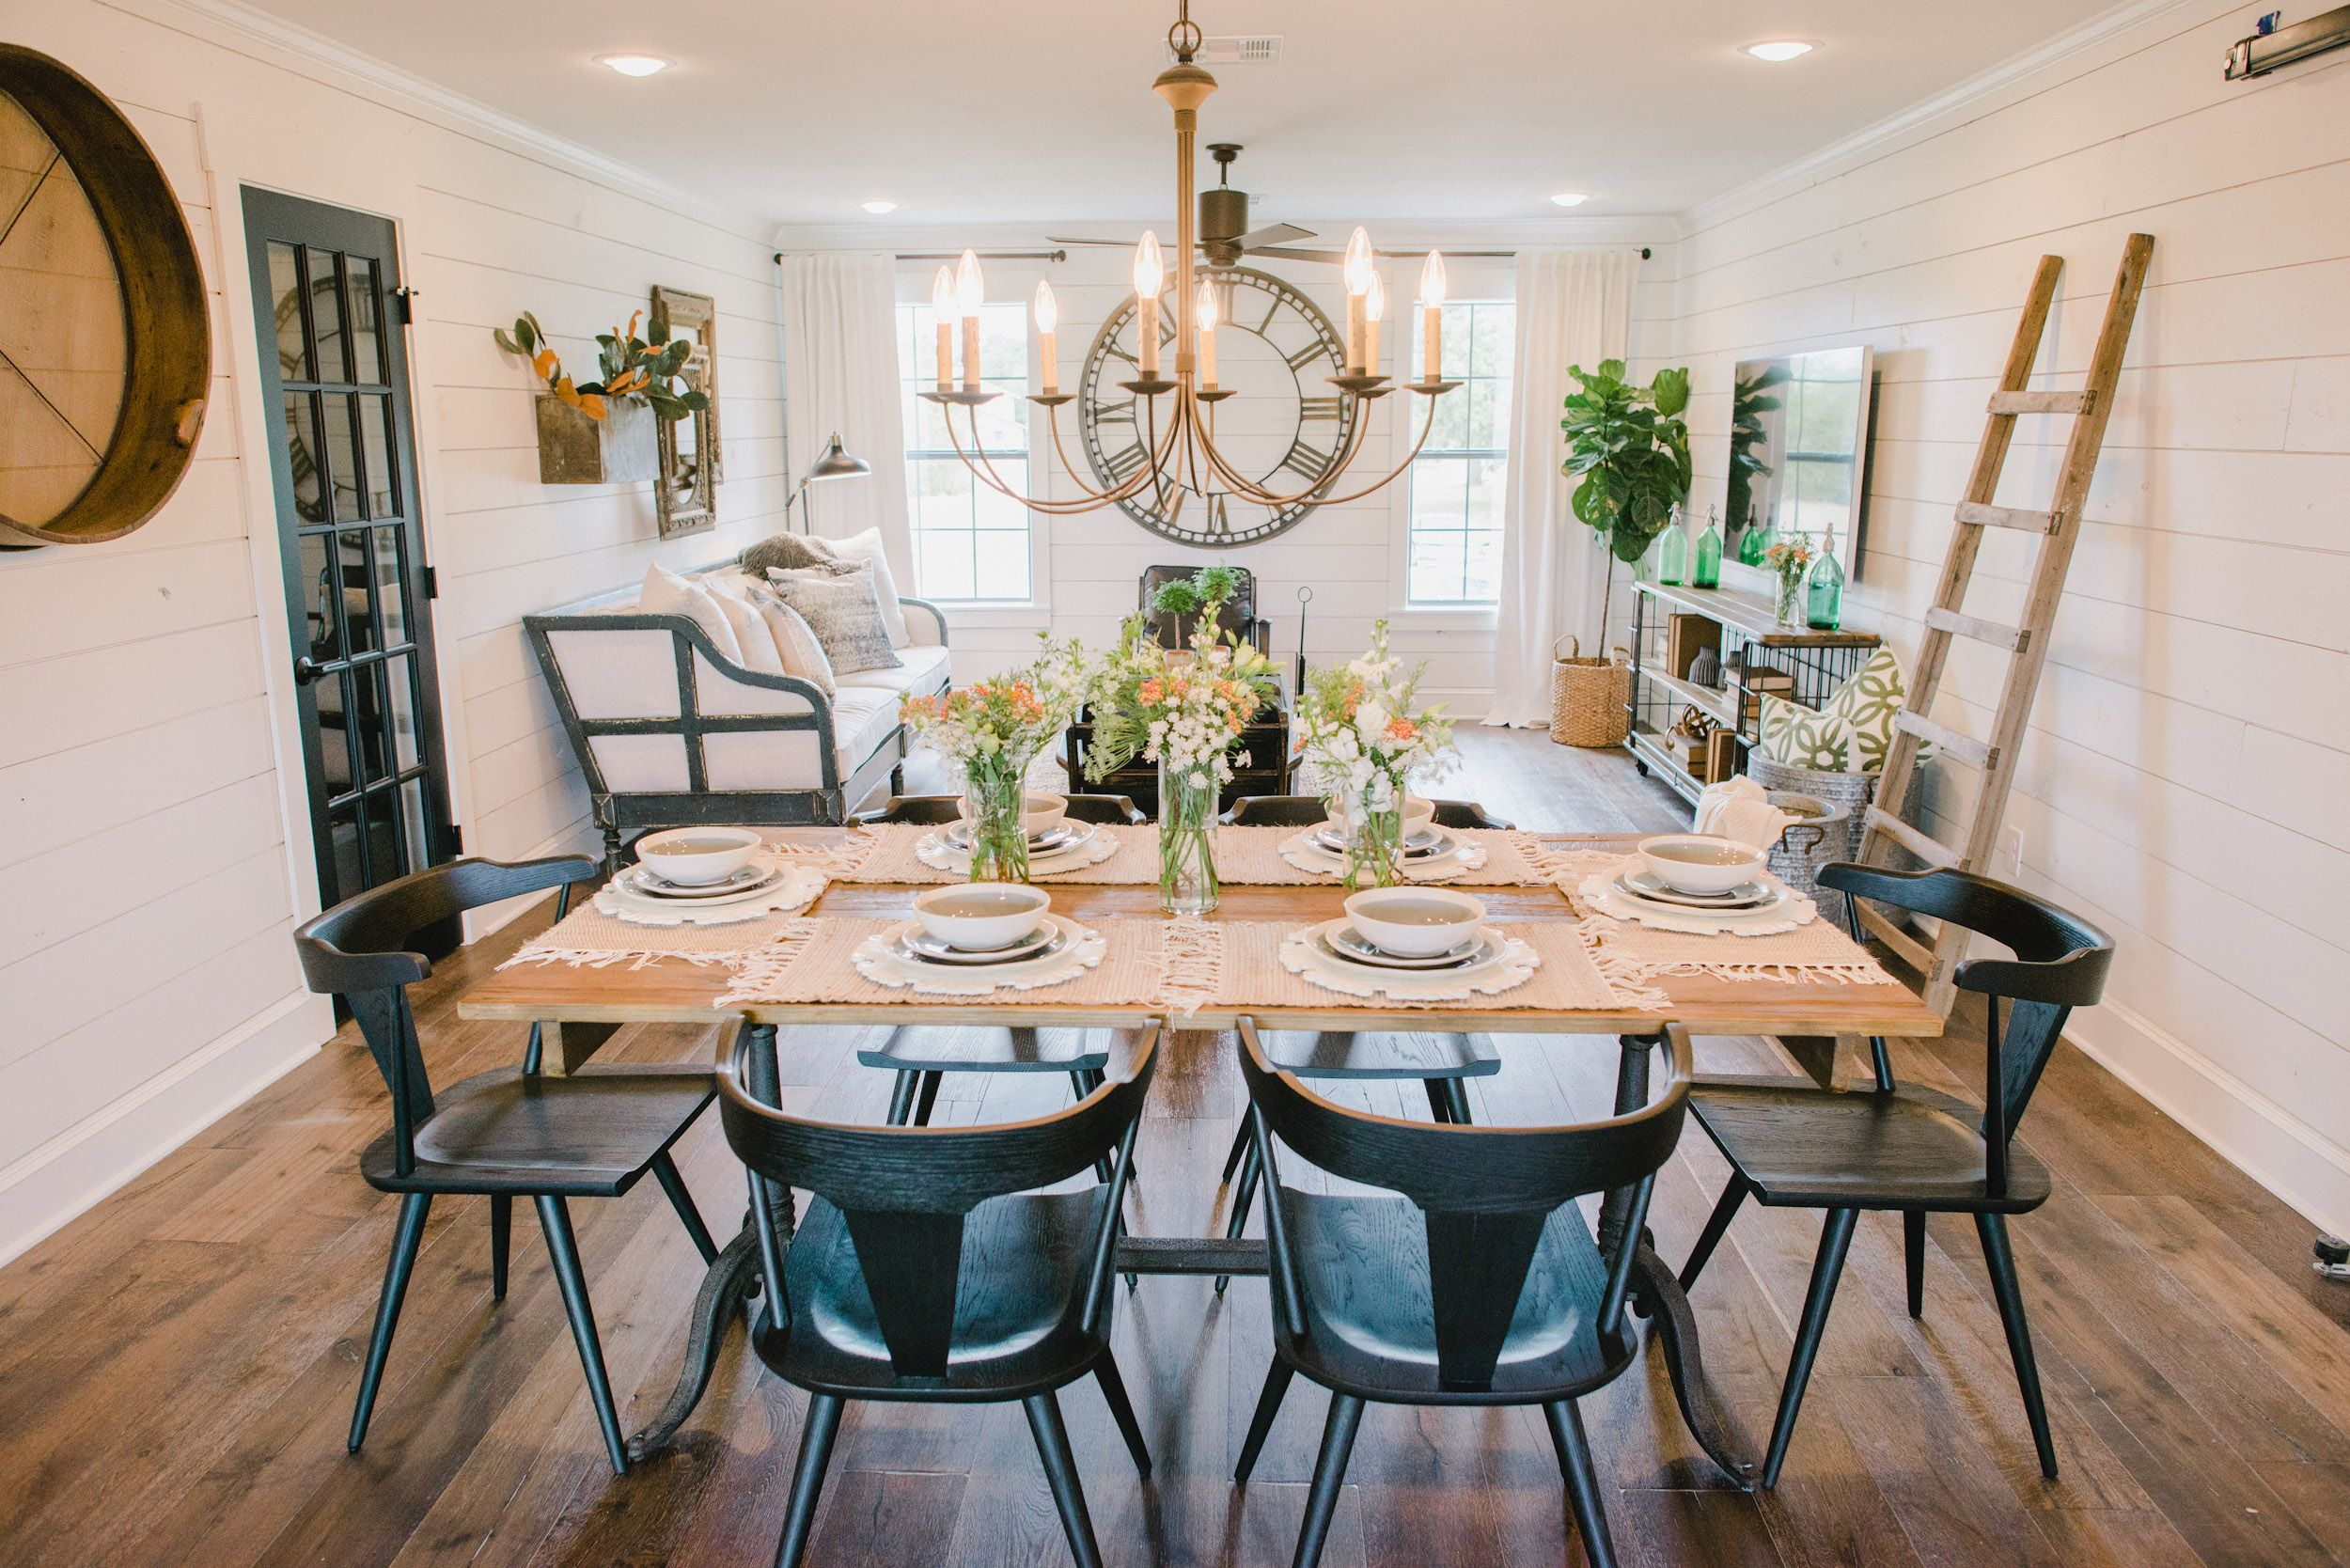 Fixer upper barndominium kitchen - The Meek House Was One Of Our Most Unique And Maybe Even Favorite Fixer Upper Renovations To Date There Will Be Some Really Unexpected Homes Coming Up